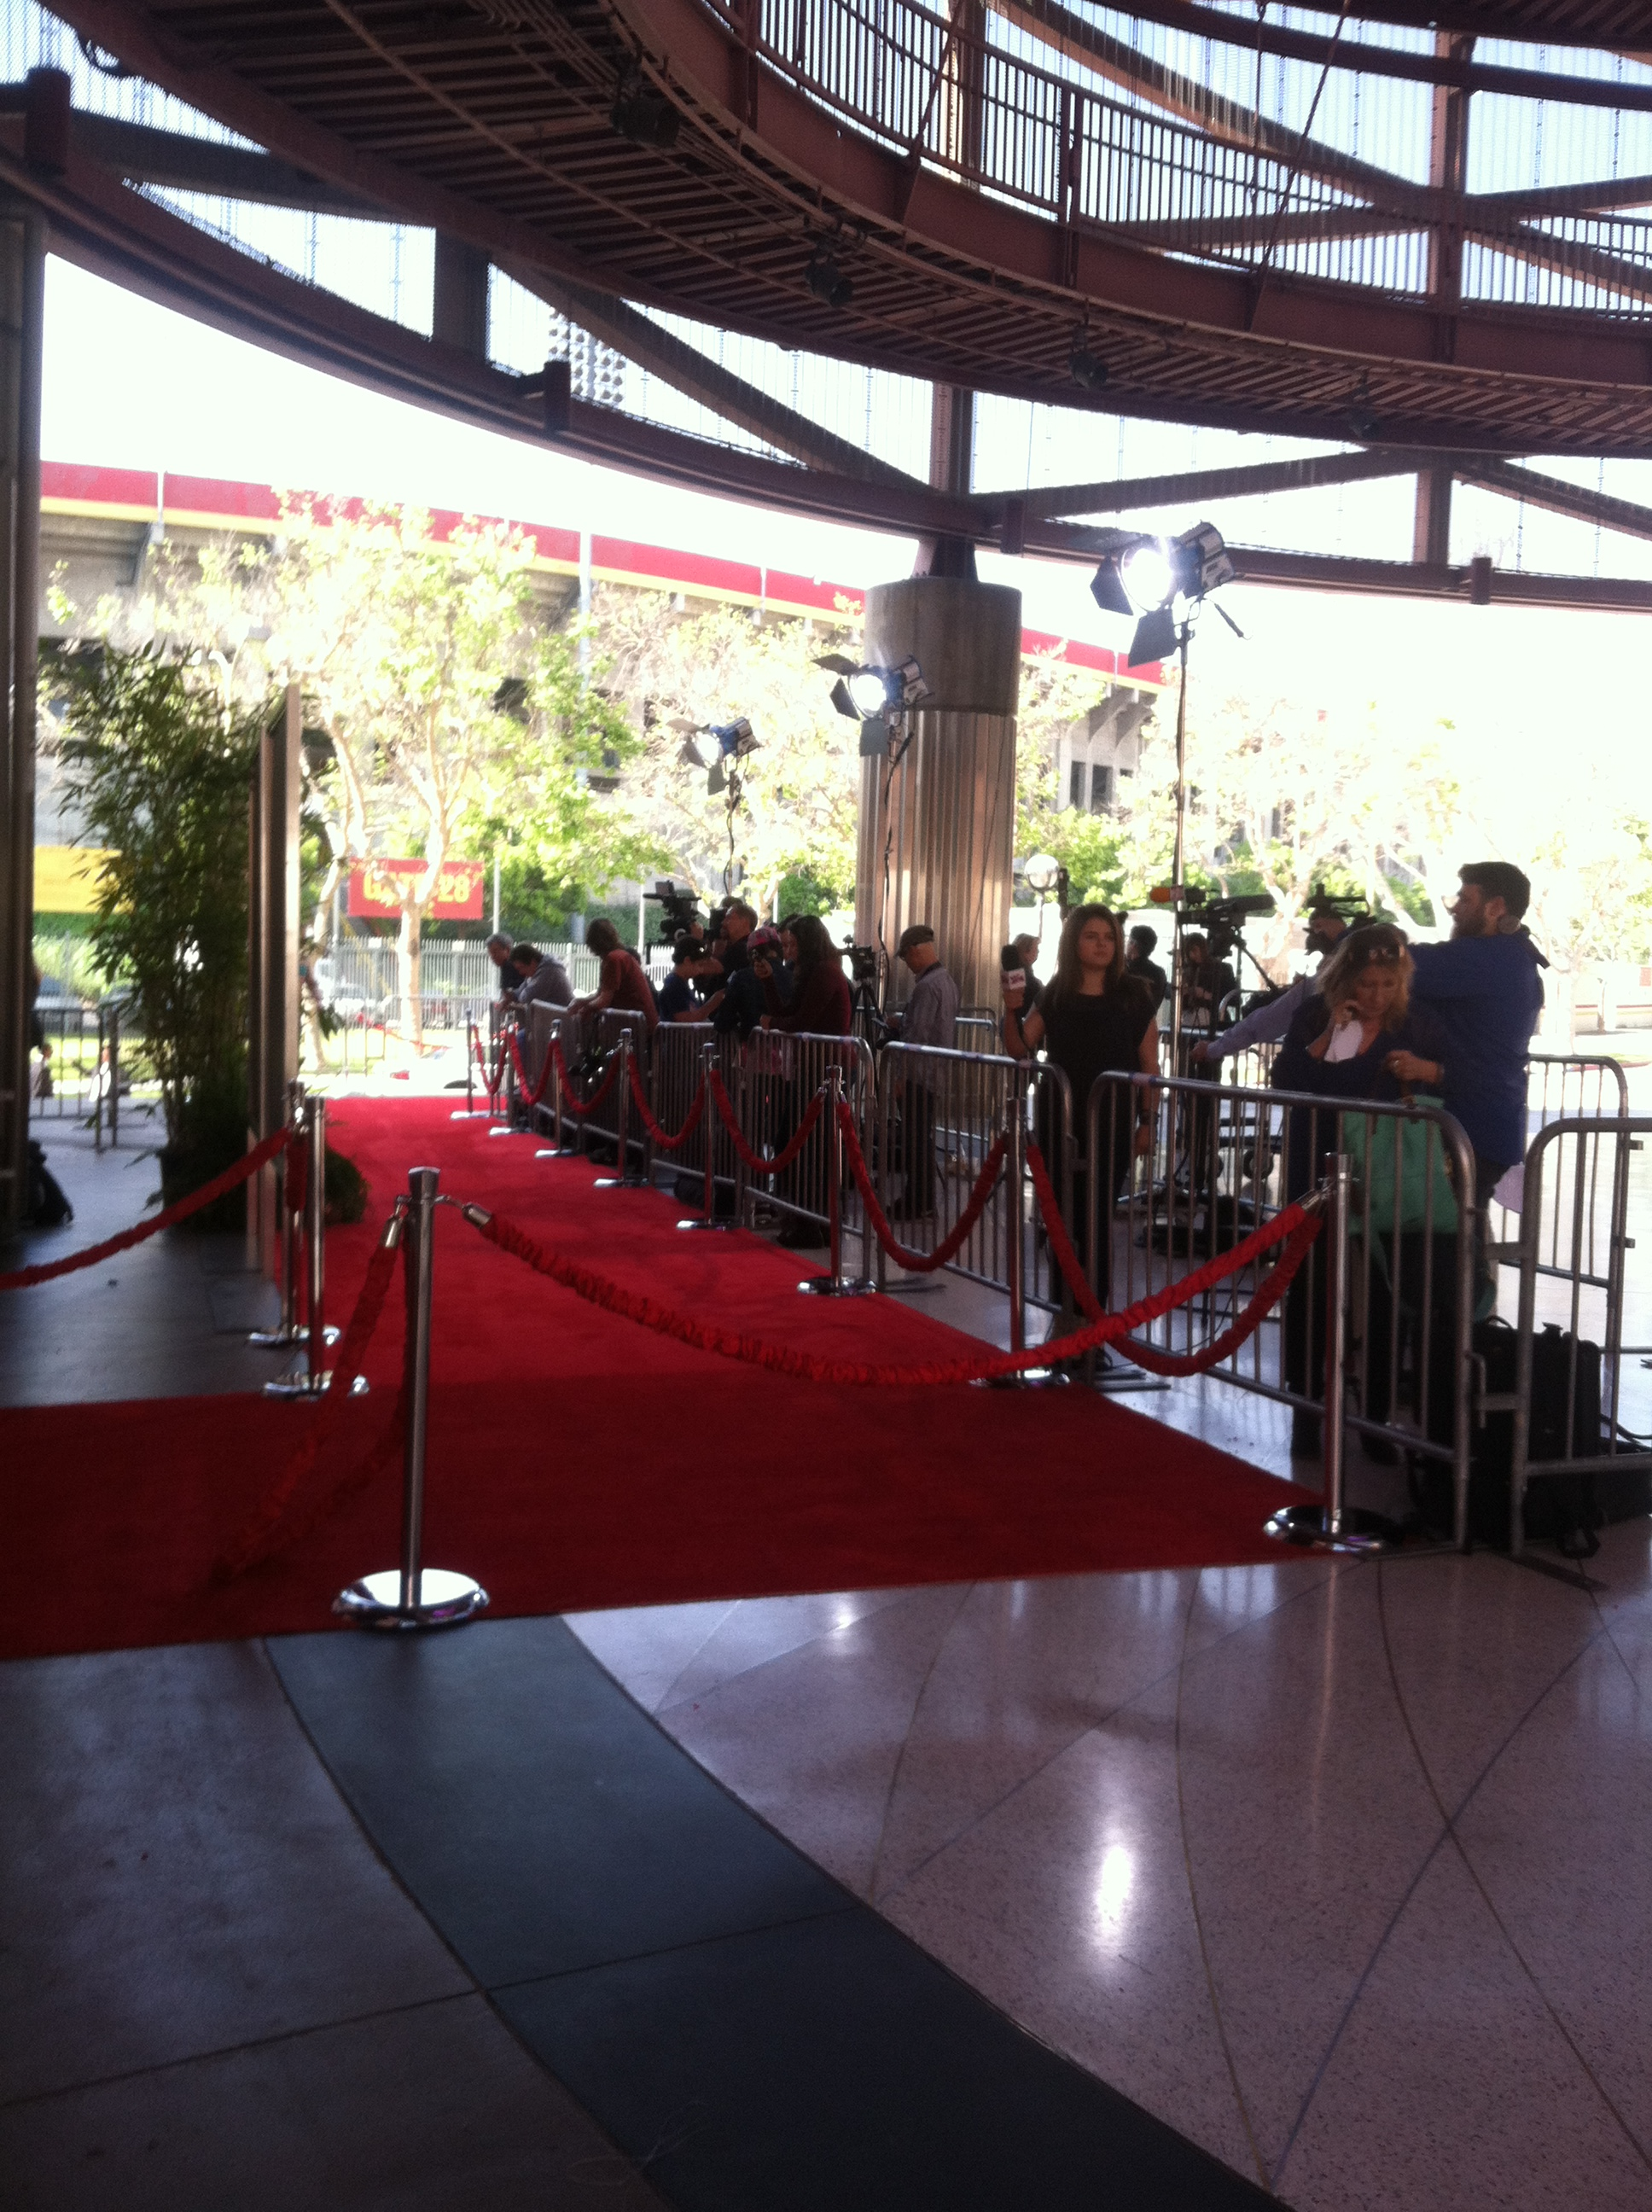 Red Carpet Press Line outside IMAX Theater for film premiere